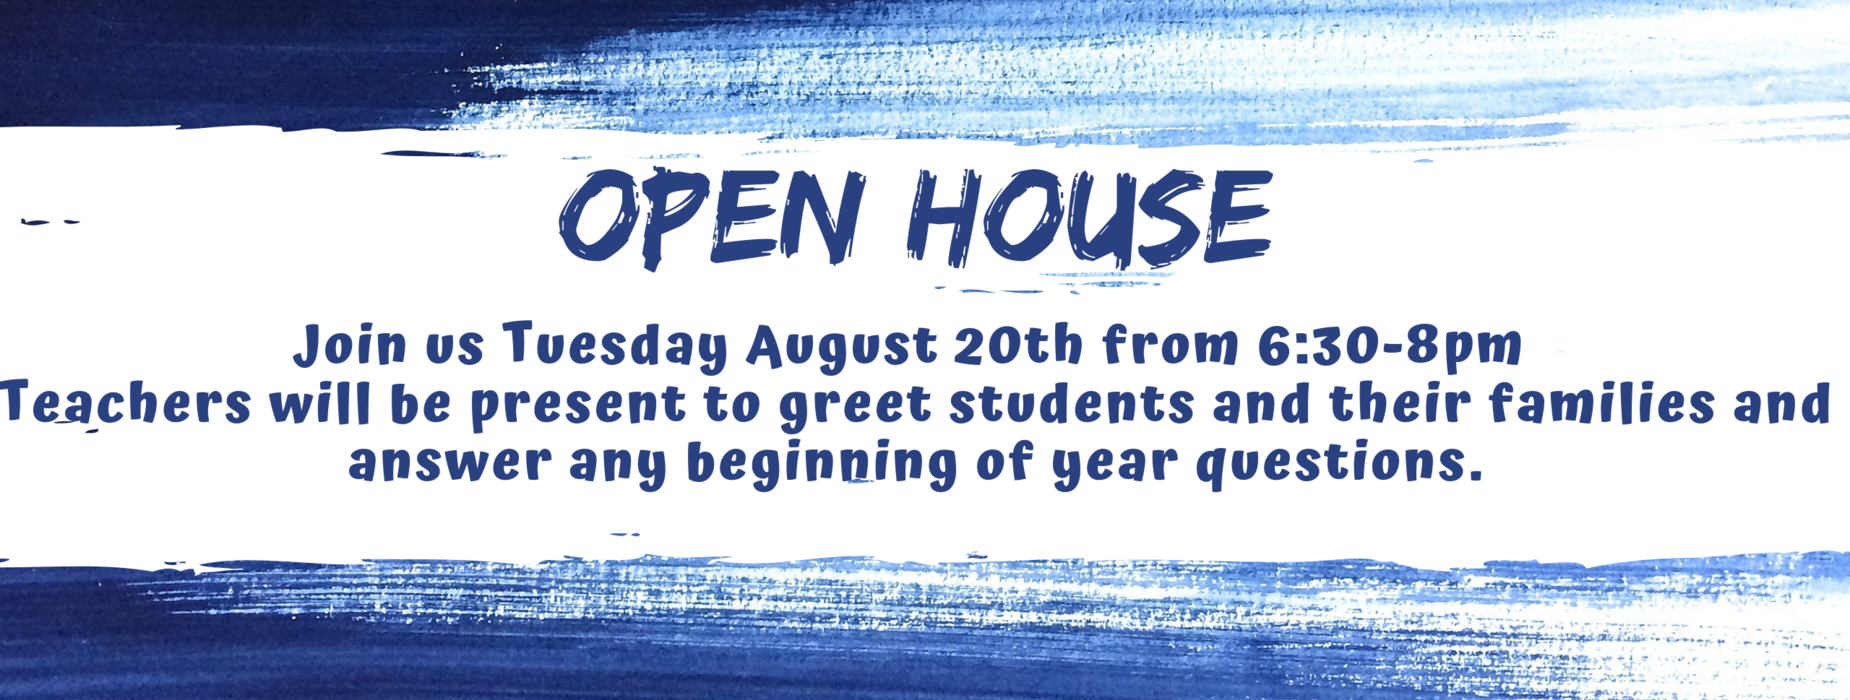 Join us Tuesday, August 20 from 6:30-8pm. Teachers will be present to greet students and their families and answer any beginning of year questions.